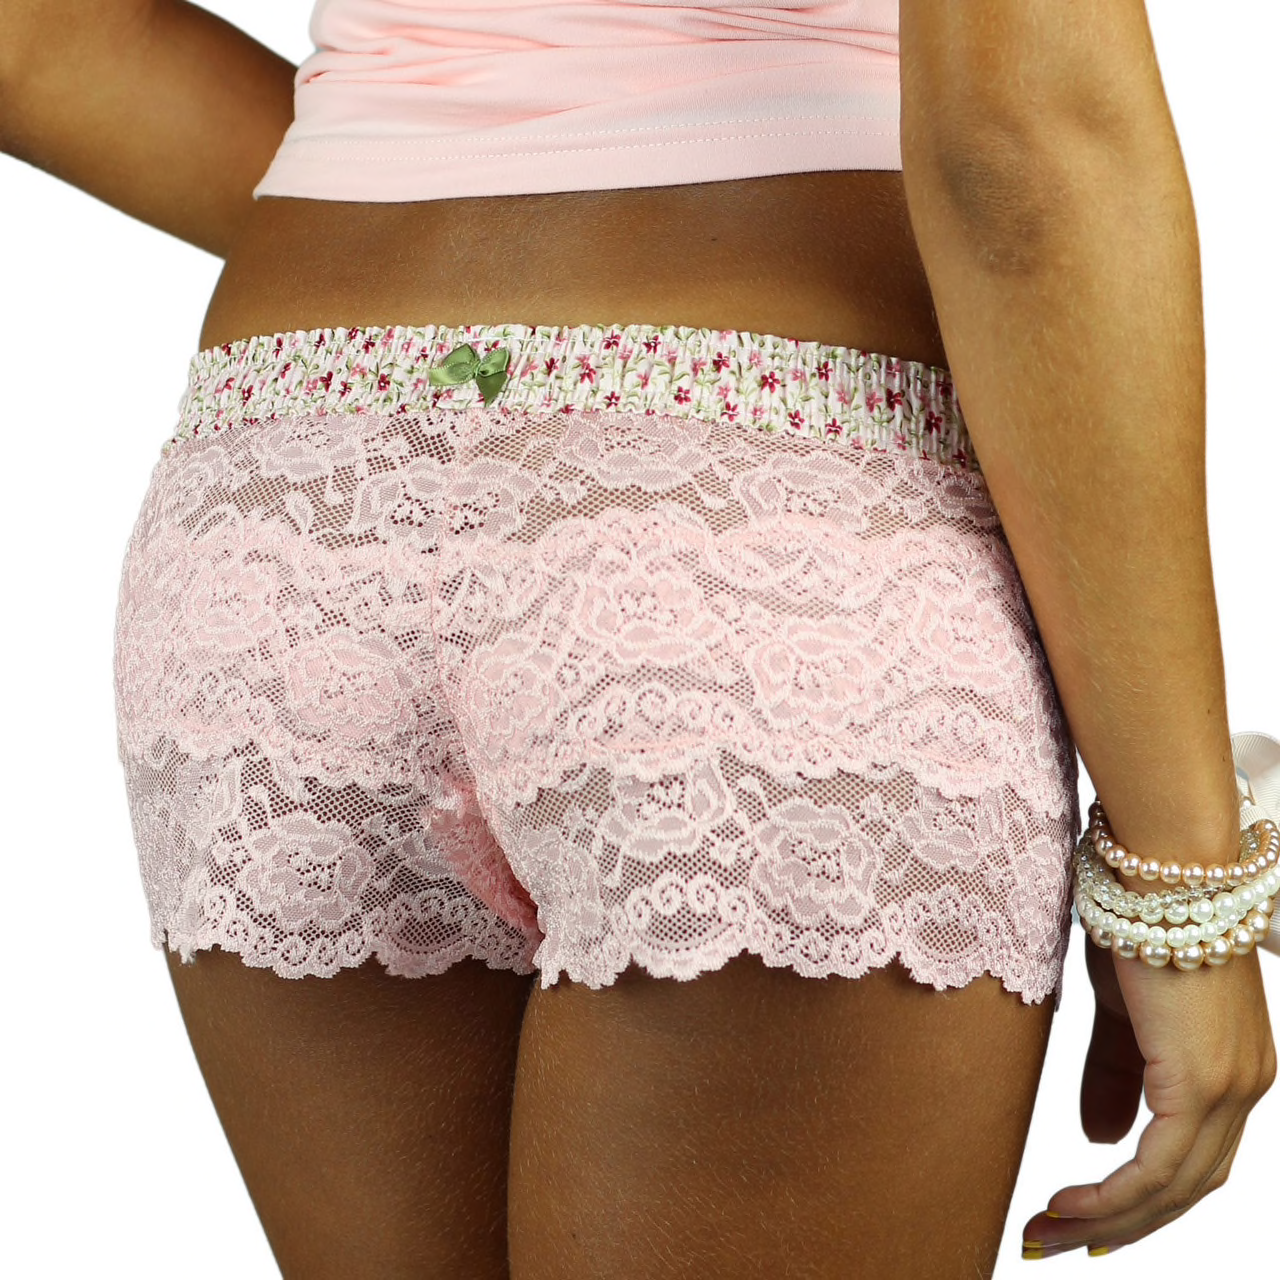 Foxers Pink Lace Boxers with Pink Posies Waistband